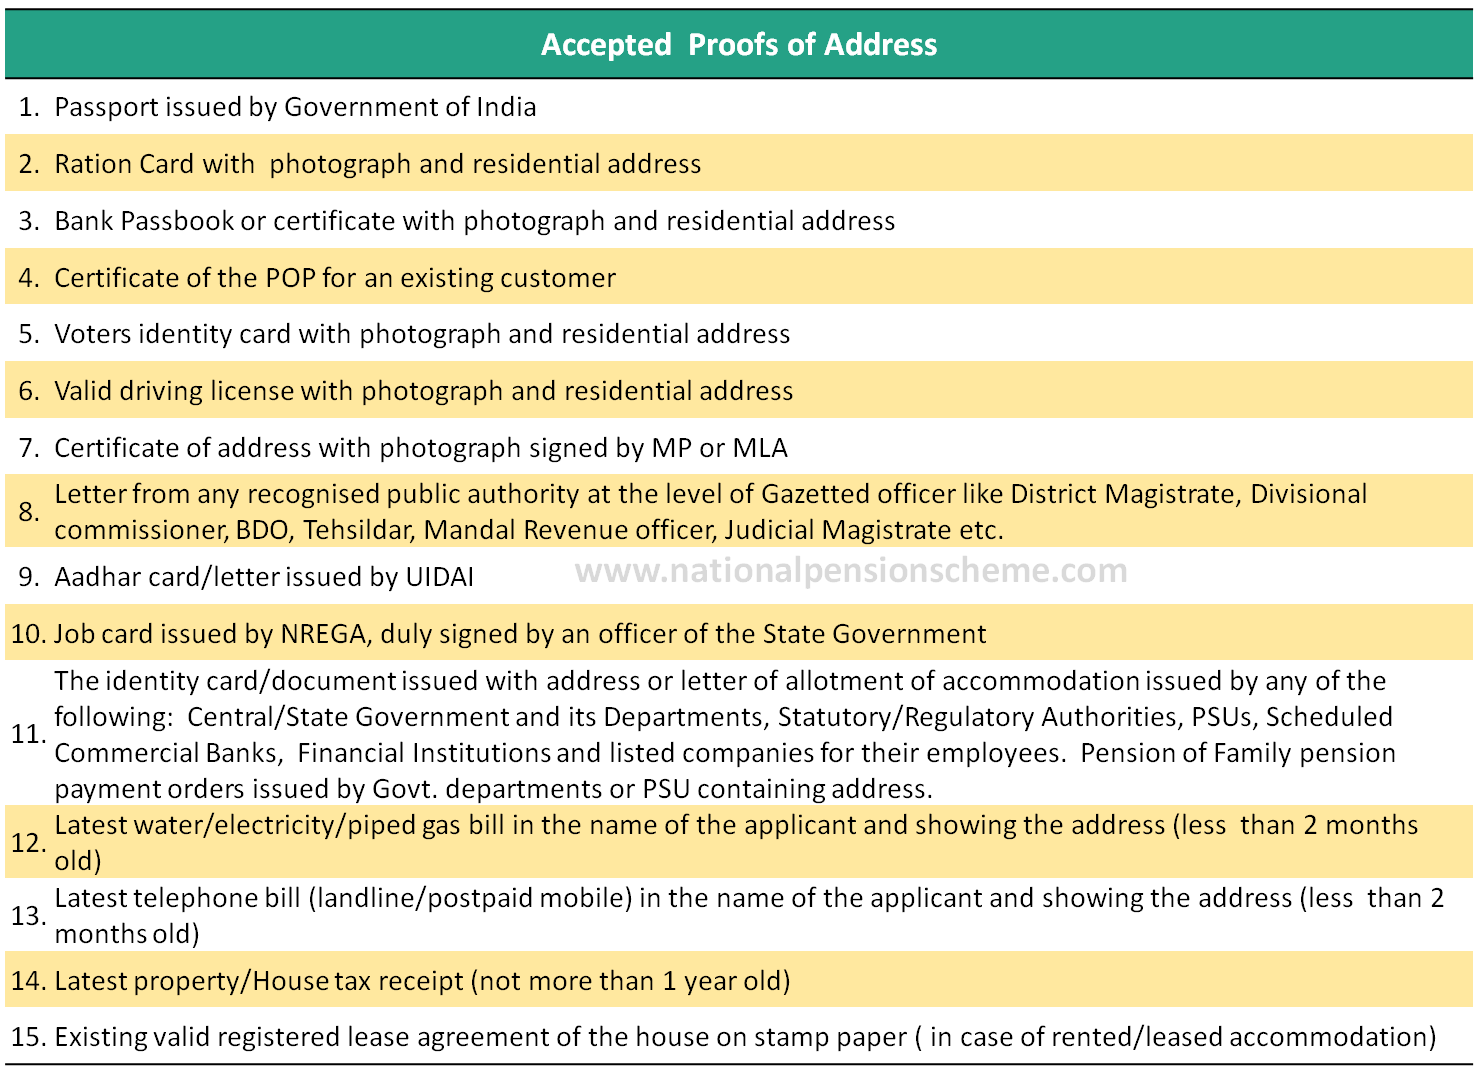 List of documents acceptable as proof of address for opening NPS account